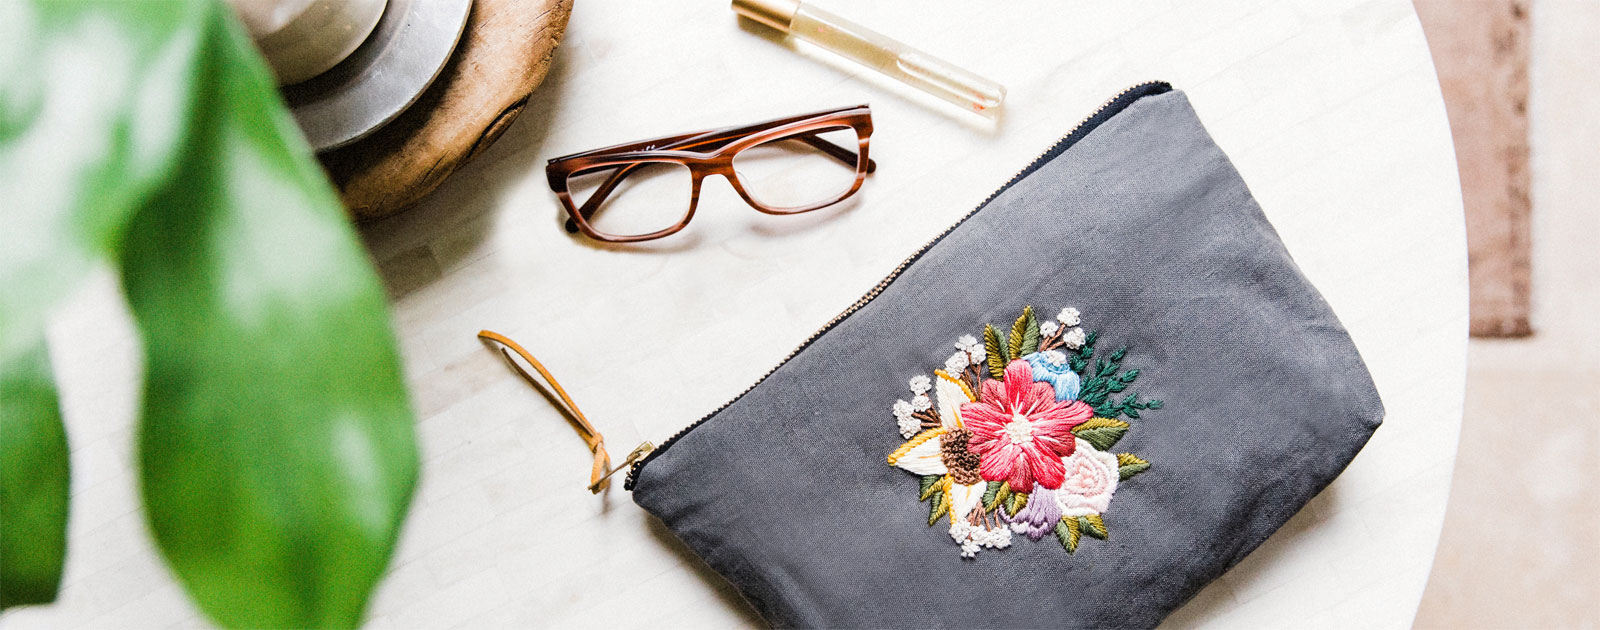 Embellishing with Floral Embroidery | Kristen Gula